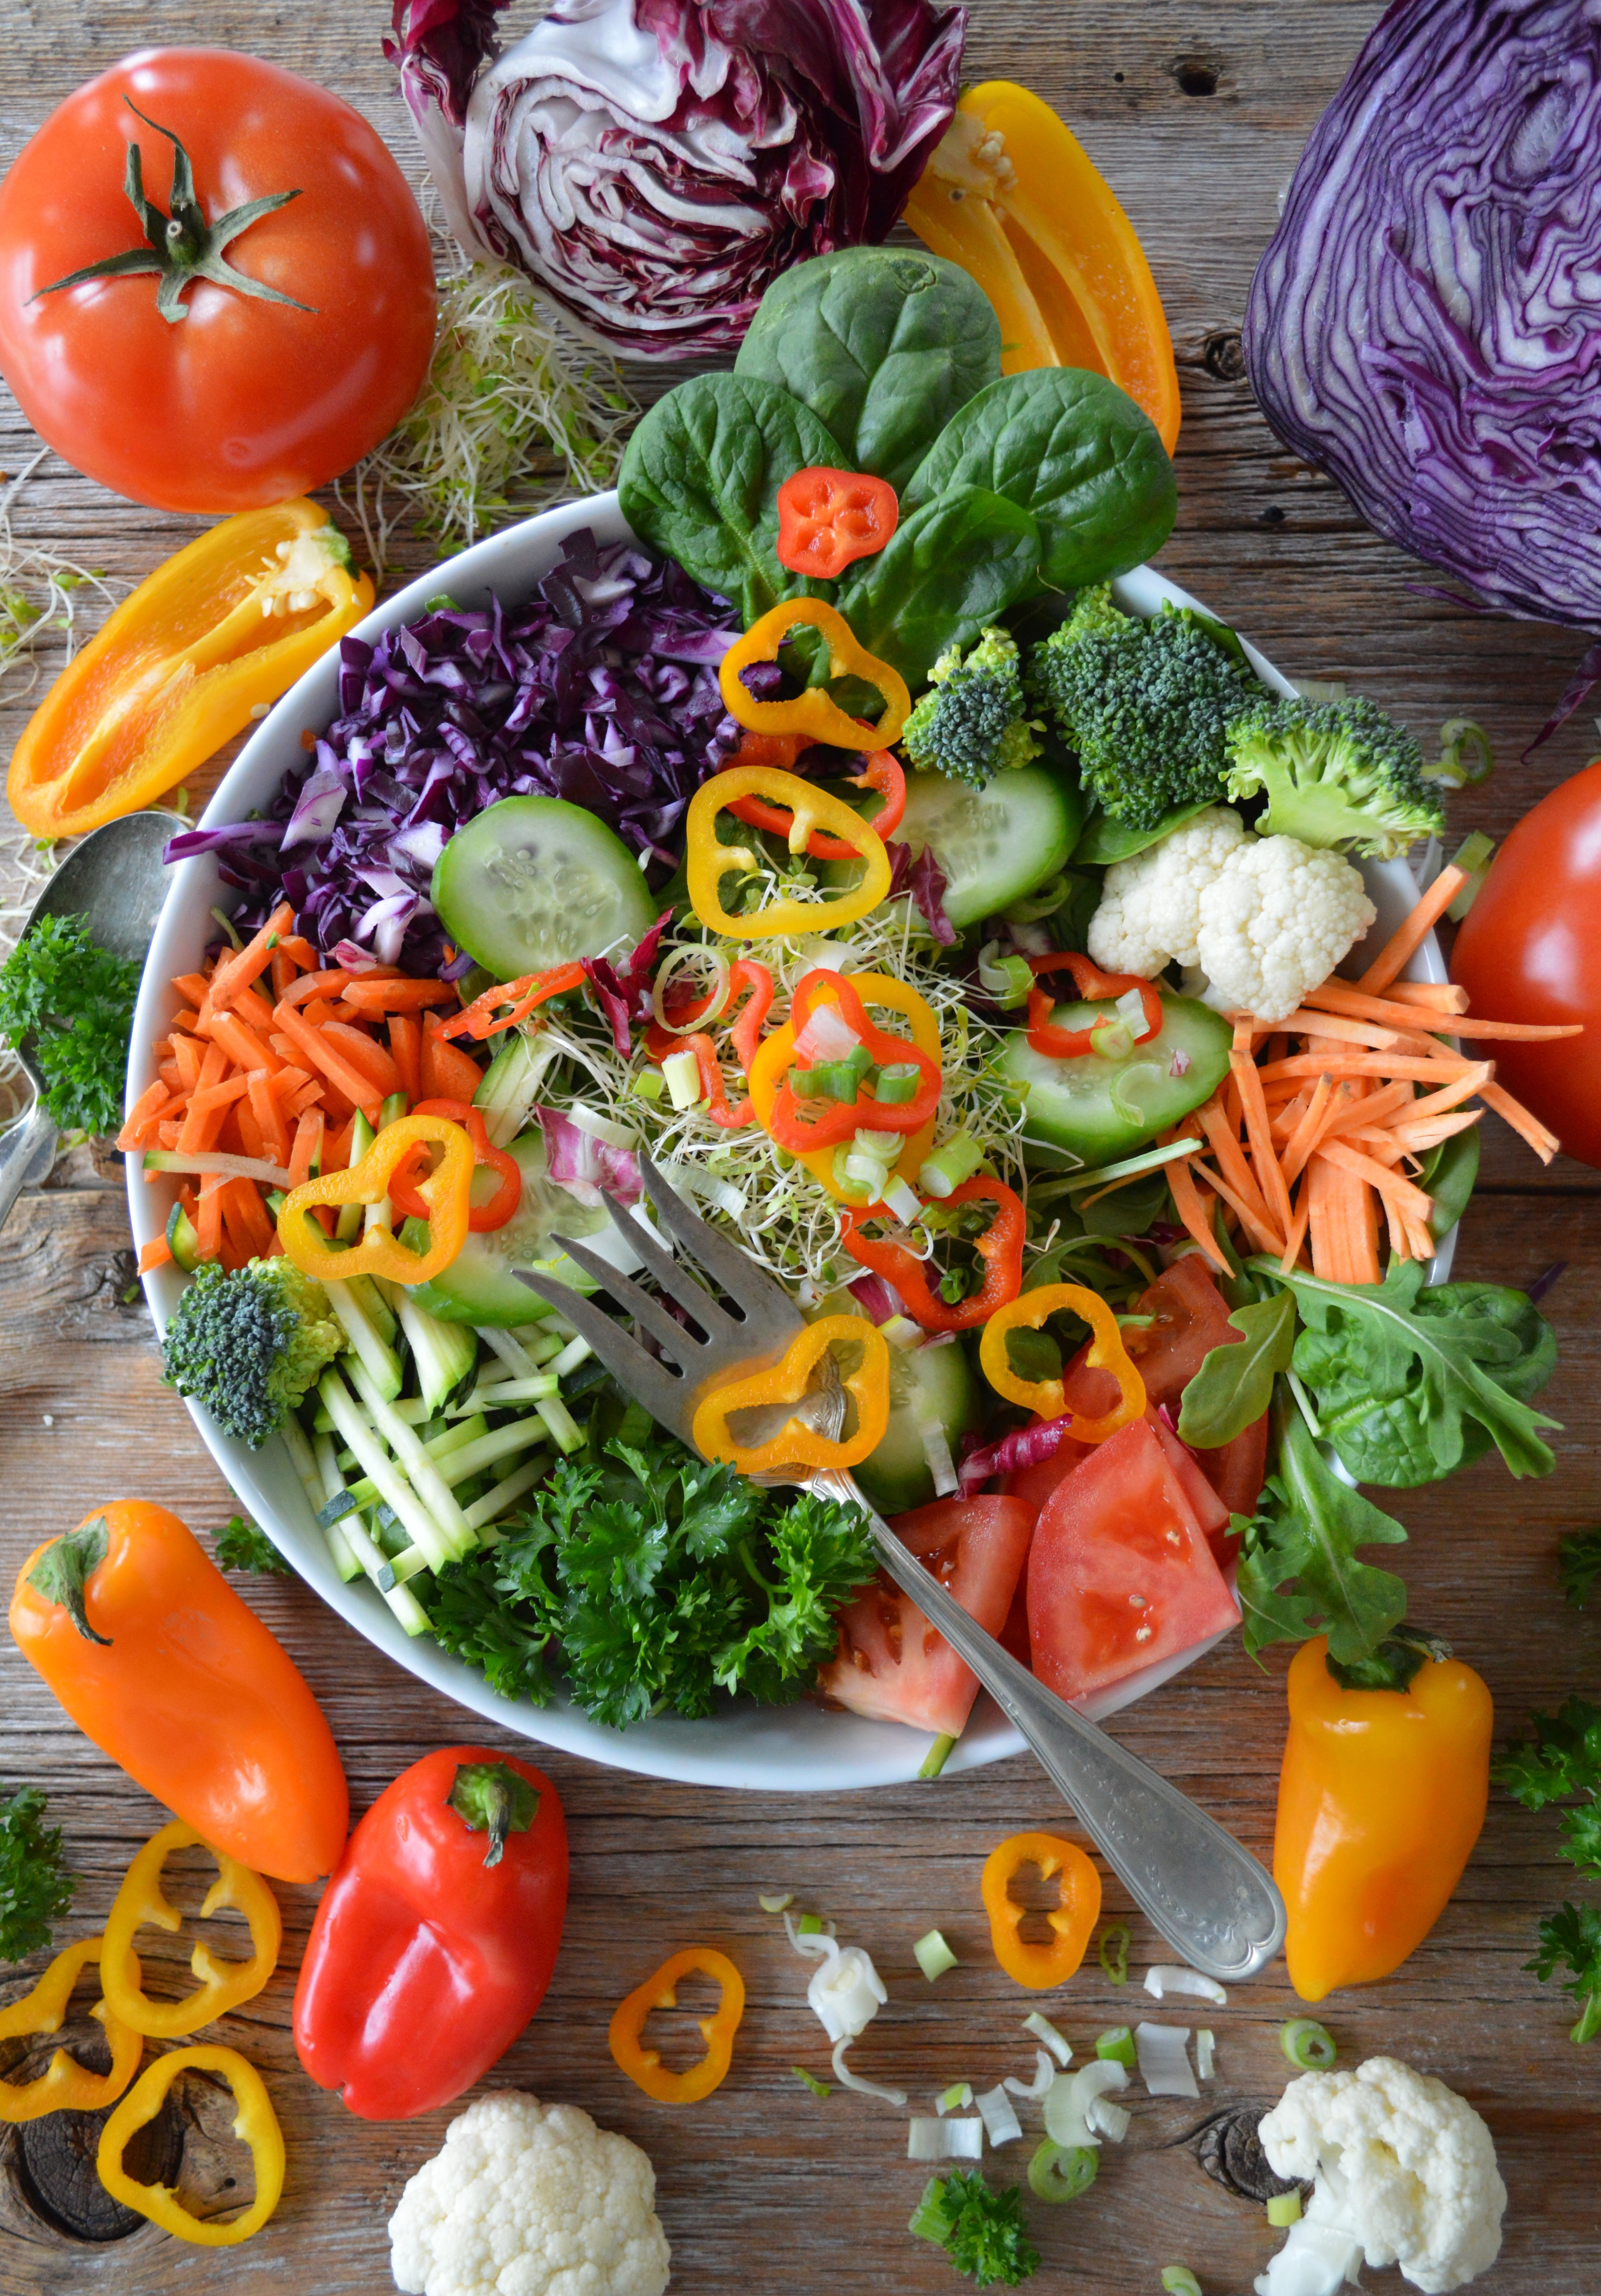 myths about plant-based diets